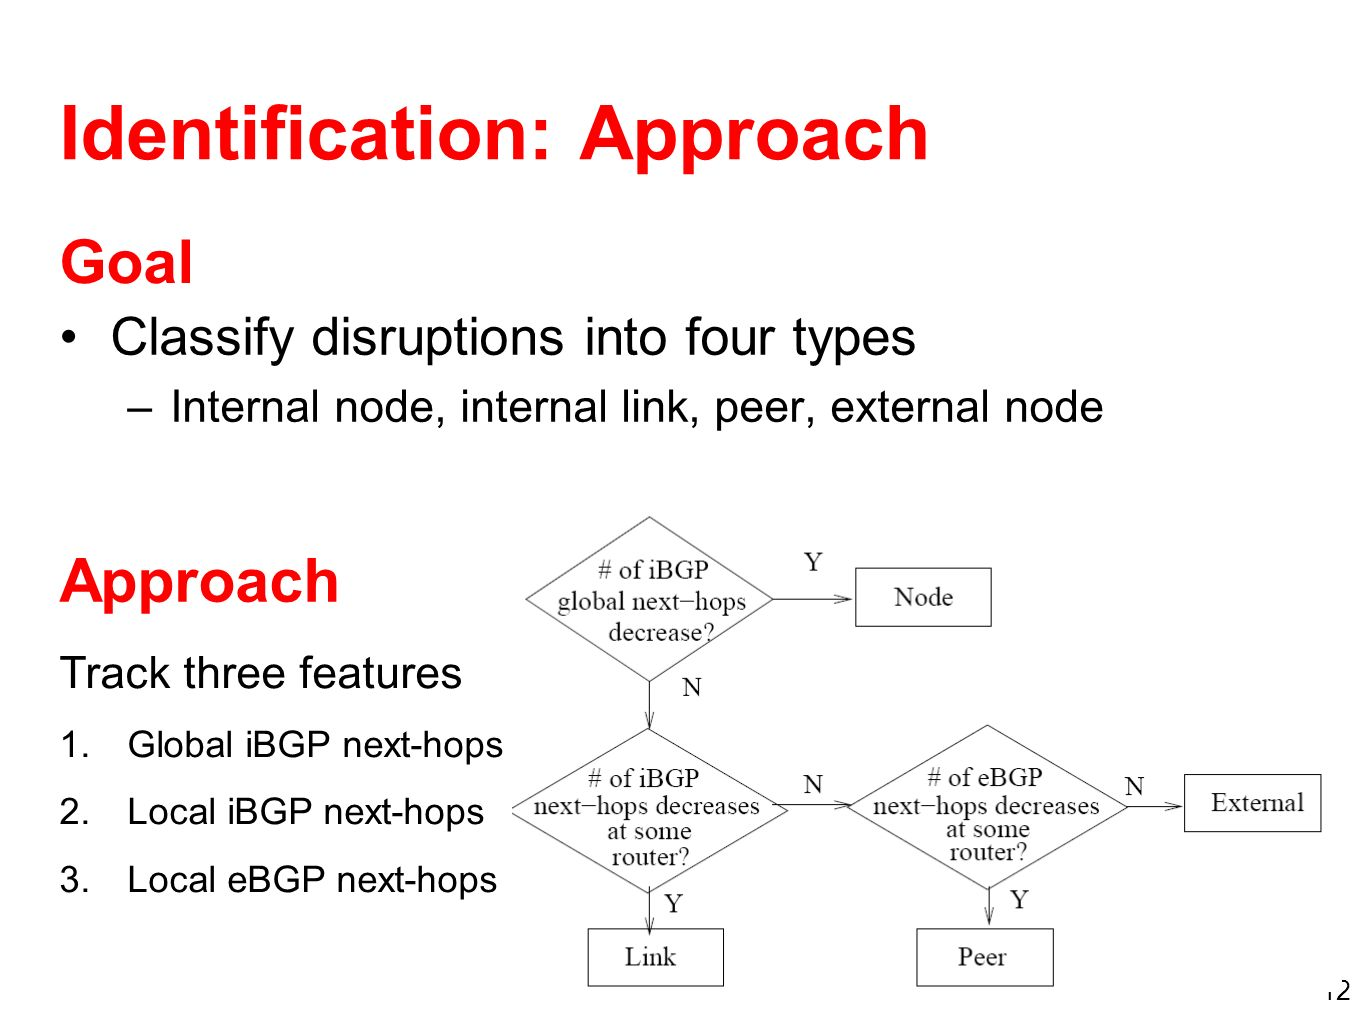 12 Identification: Approach Classify disruptions into four types –Internal node, internal link, peer, external node Track three features 1.Global iBGP next-hops 2.Local iBGP next-hops 3.Local eBGP next-hops Approach Goal